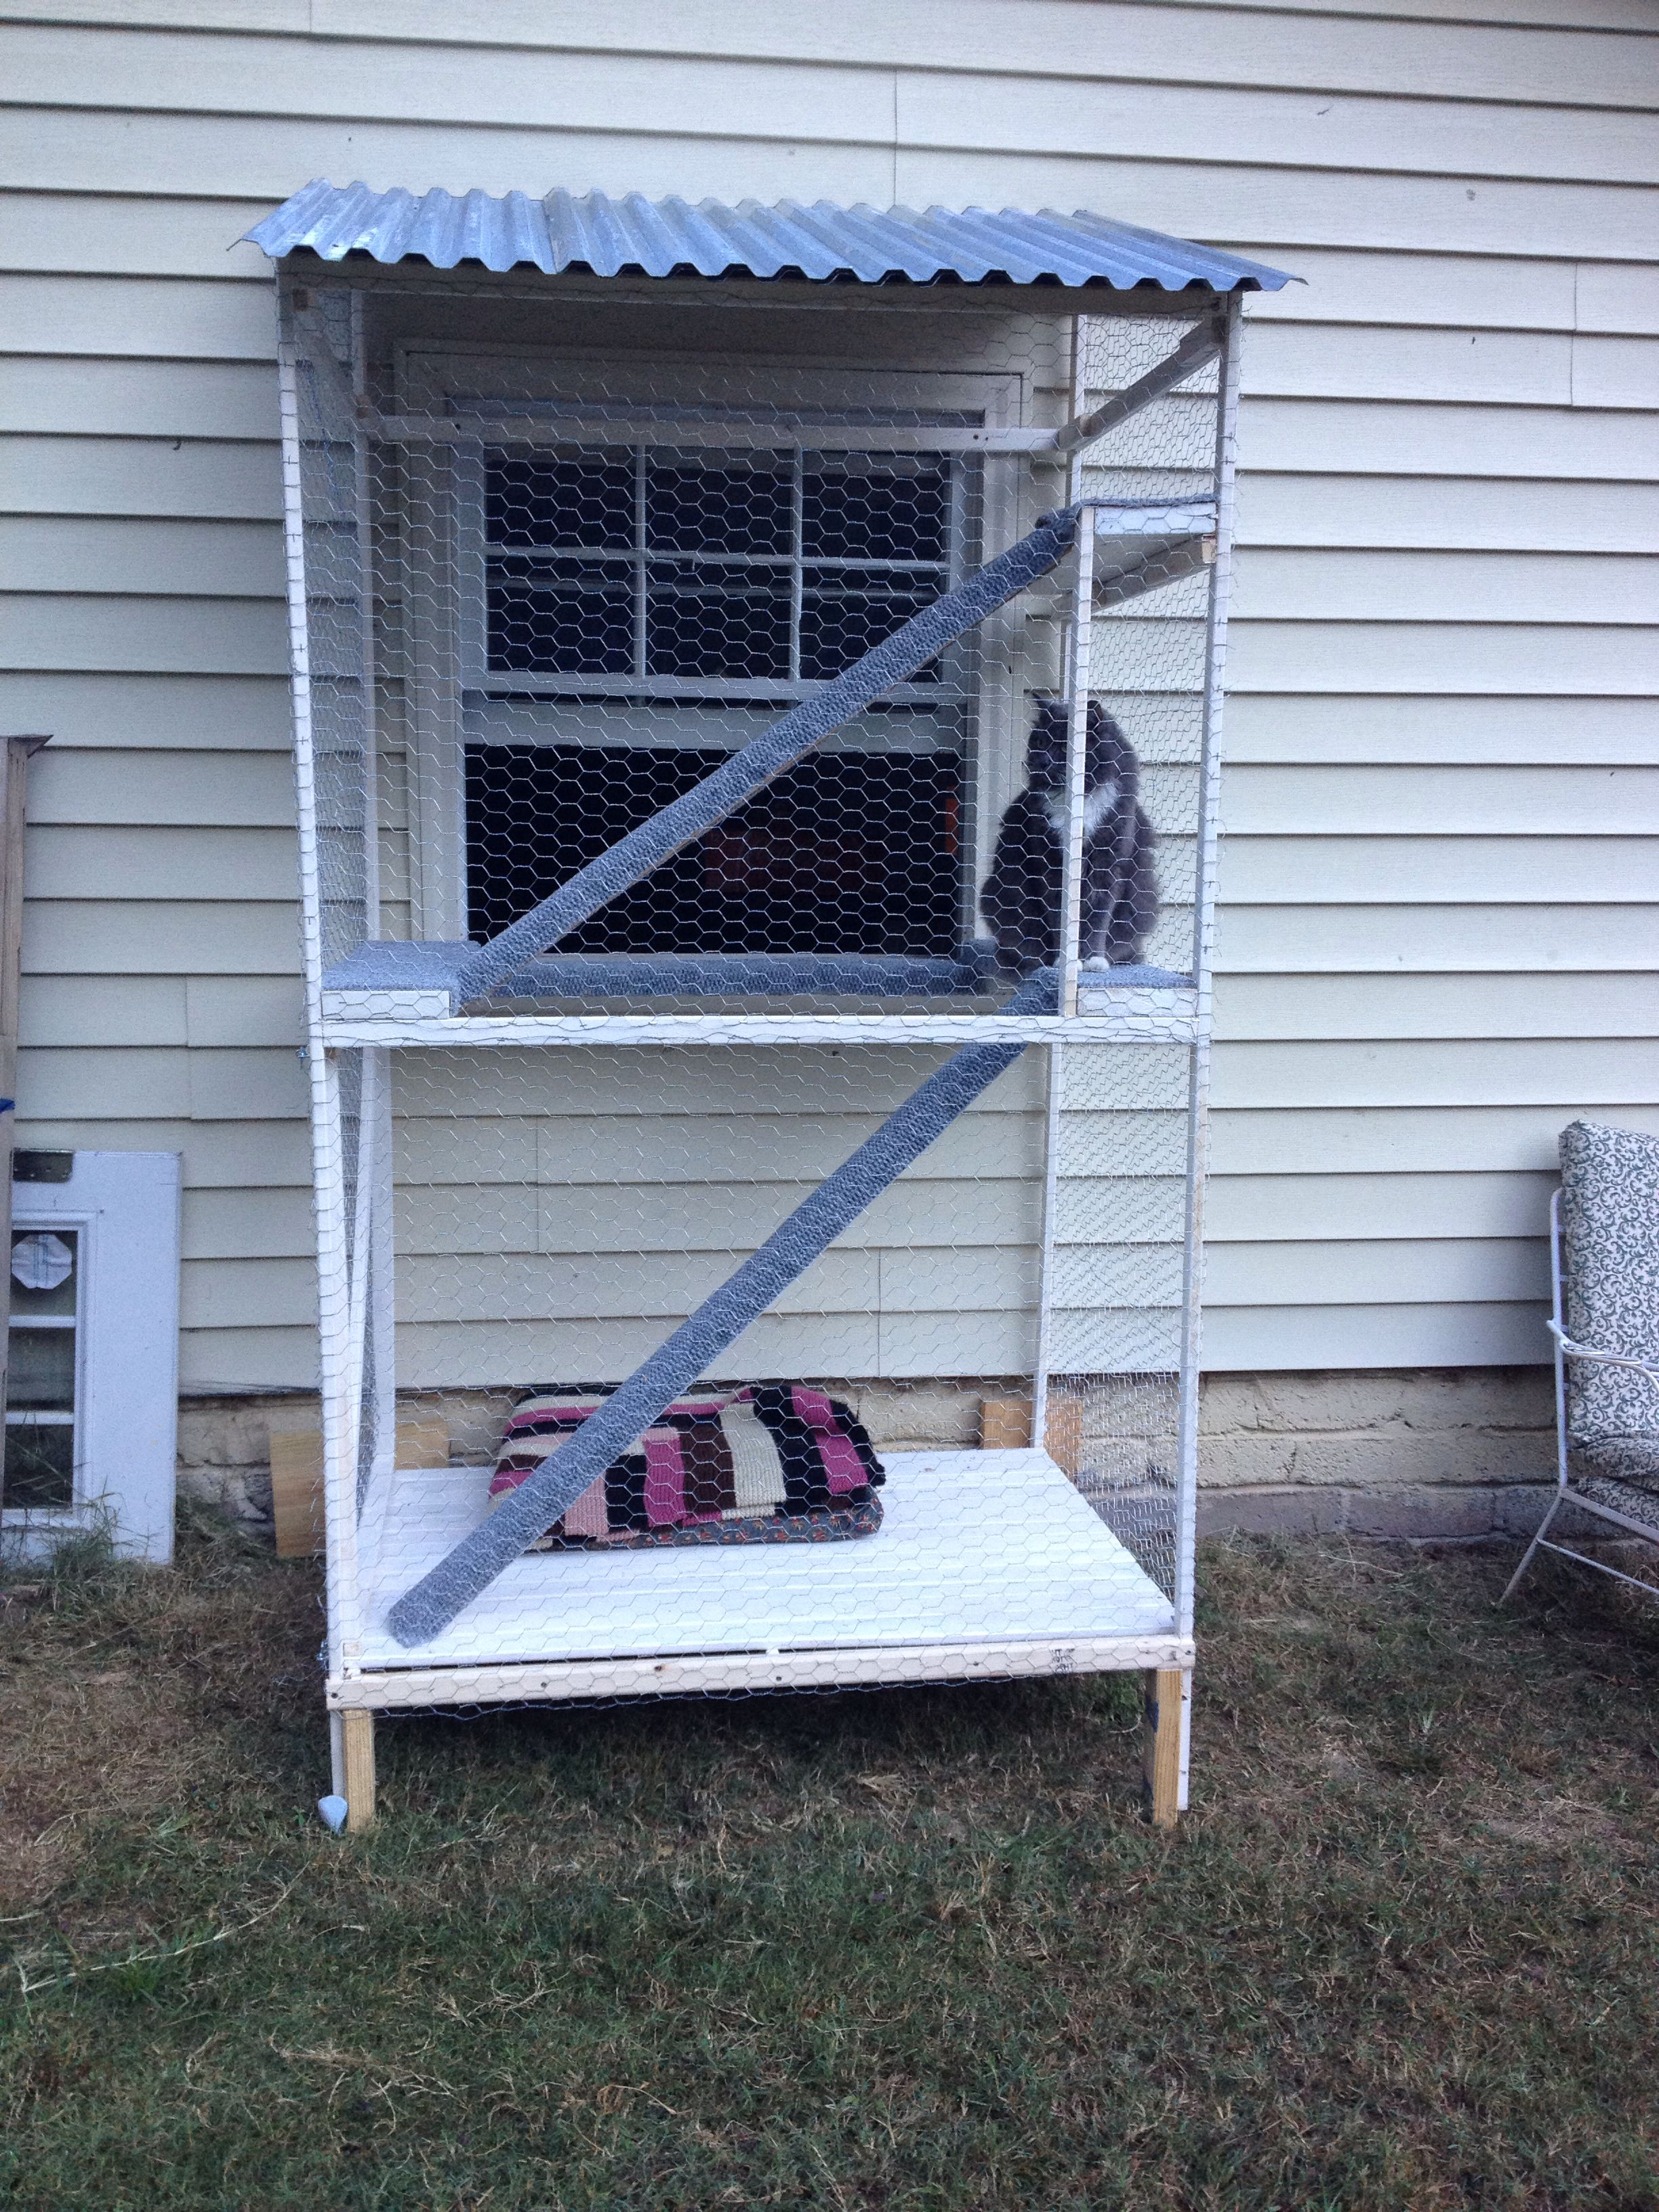 Our Catio A Safe Outdoor Inclosure For Indoor Cats Outdoor Cats Cat Patio Outdoor Cat House